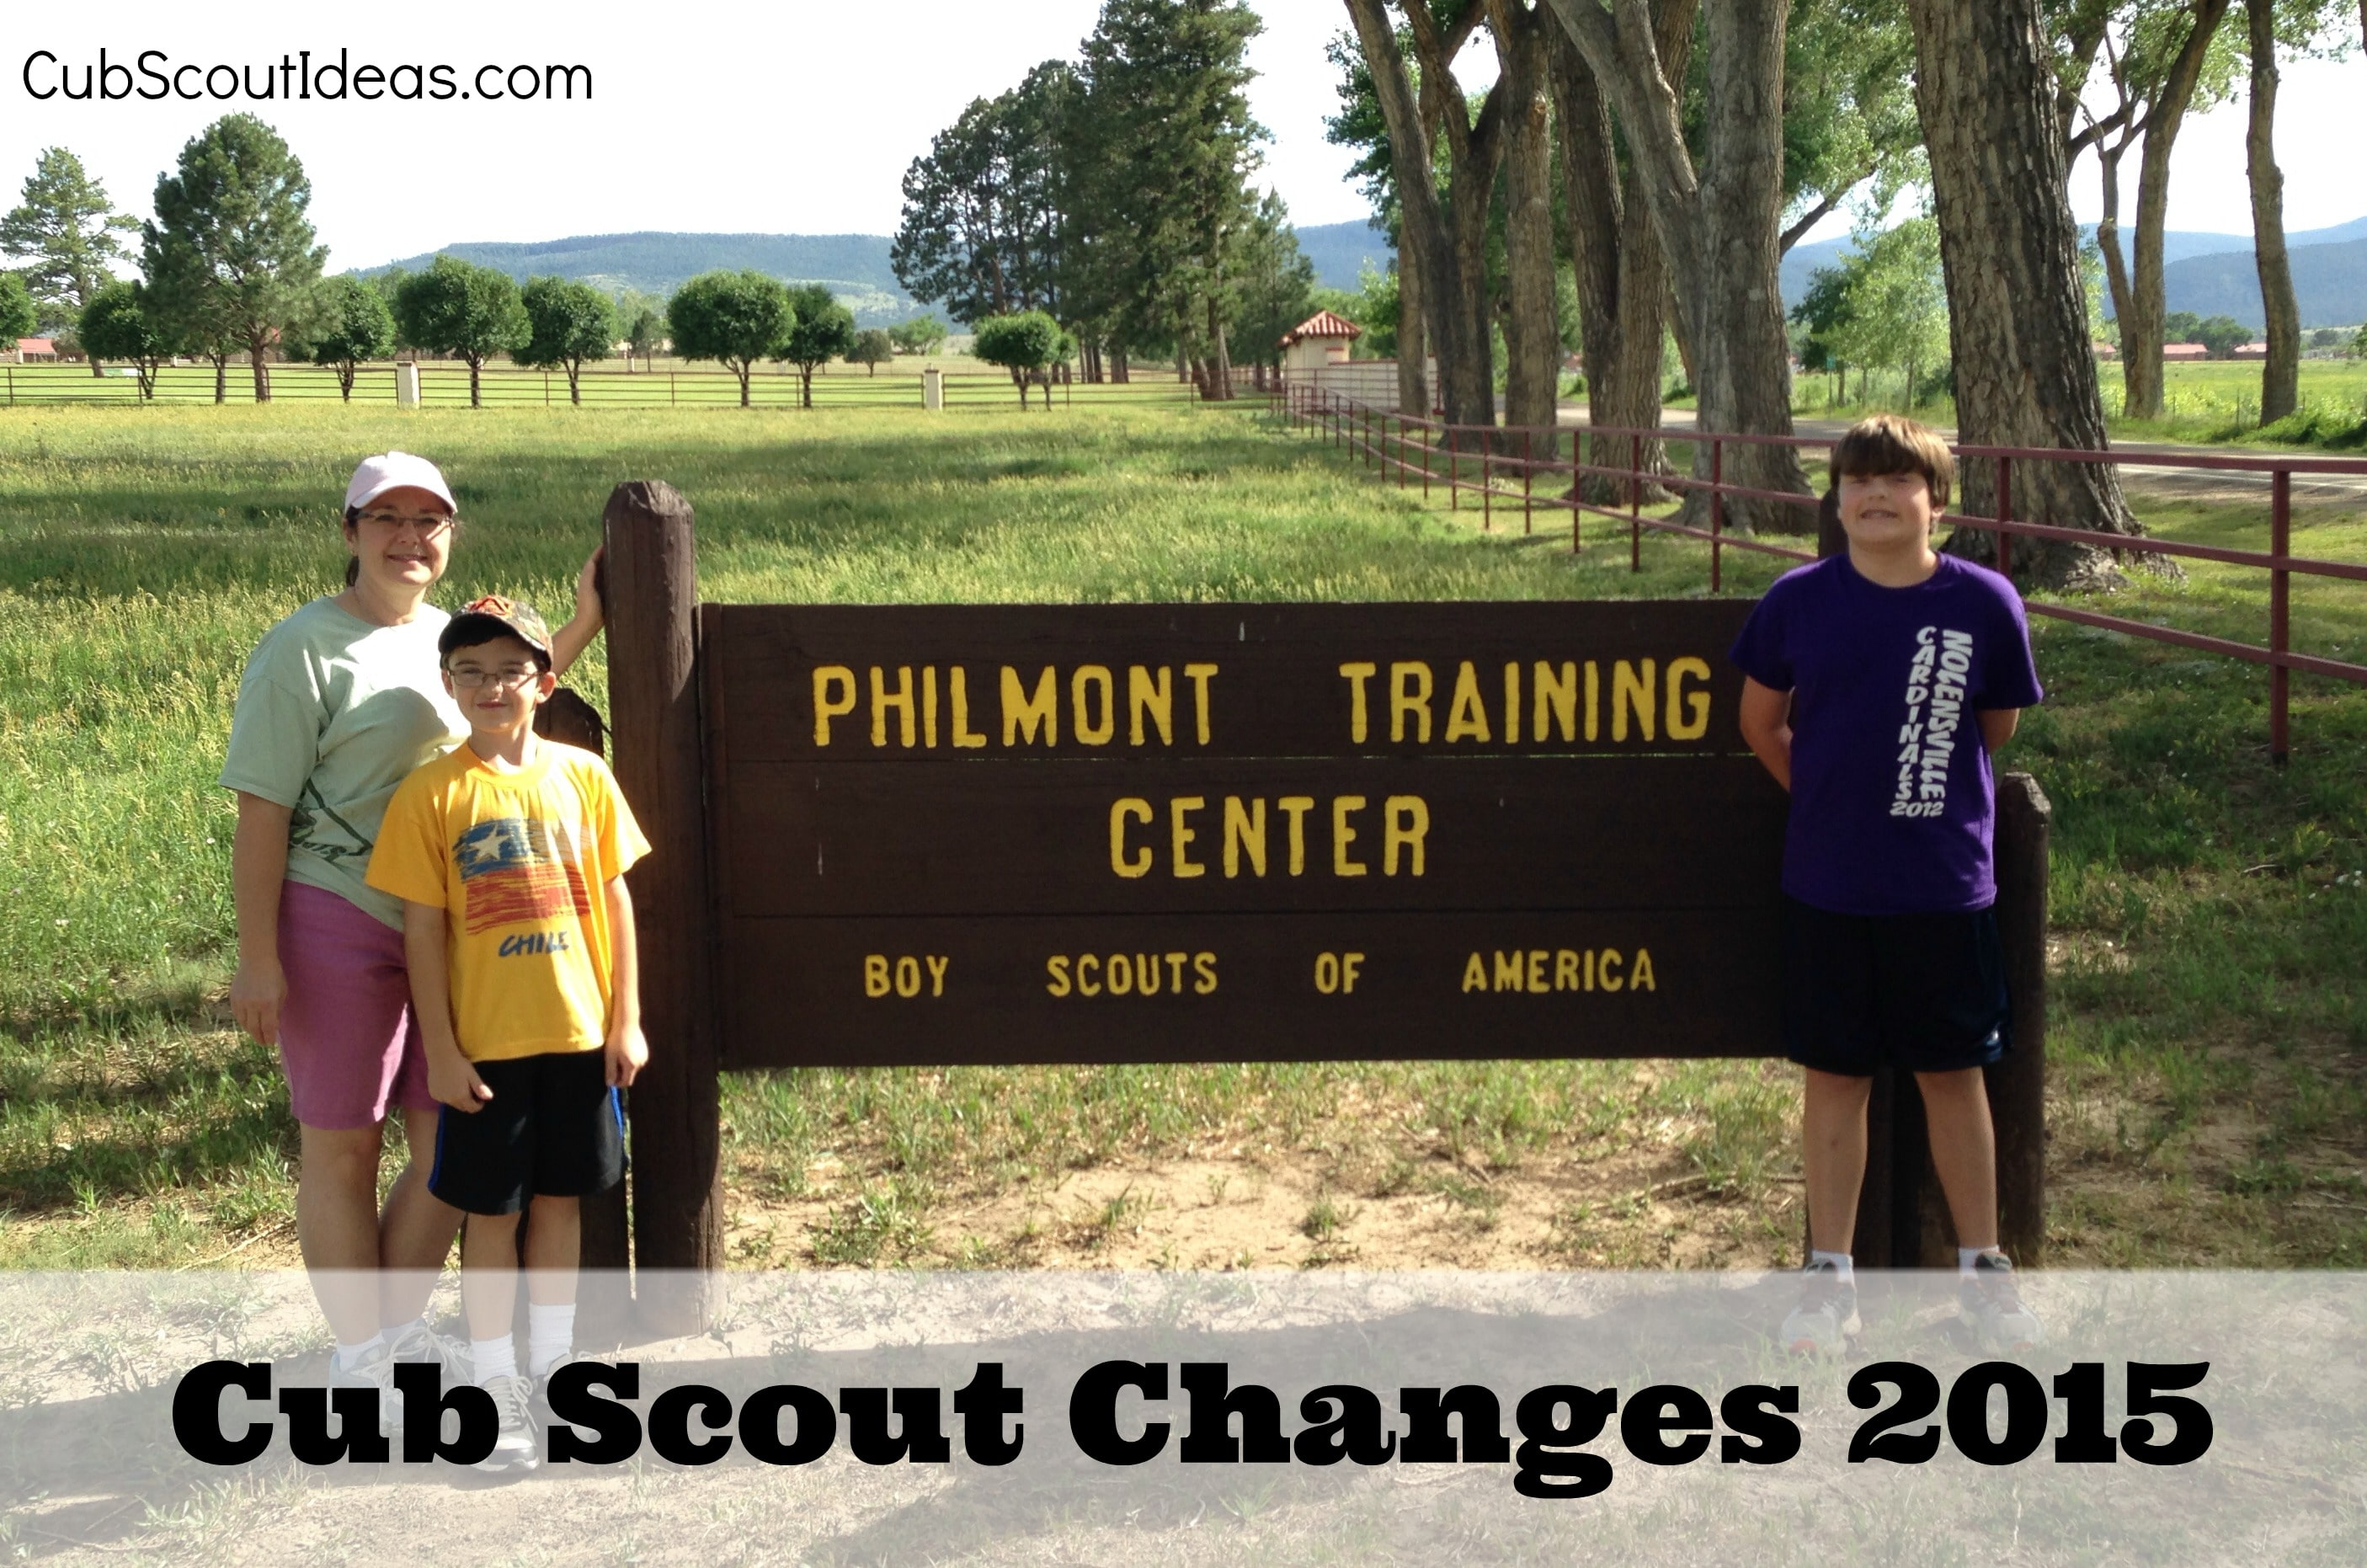 cub scout changes 2015